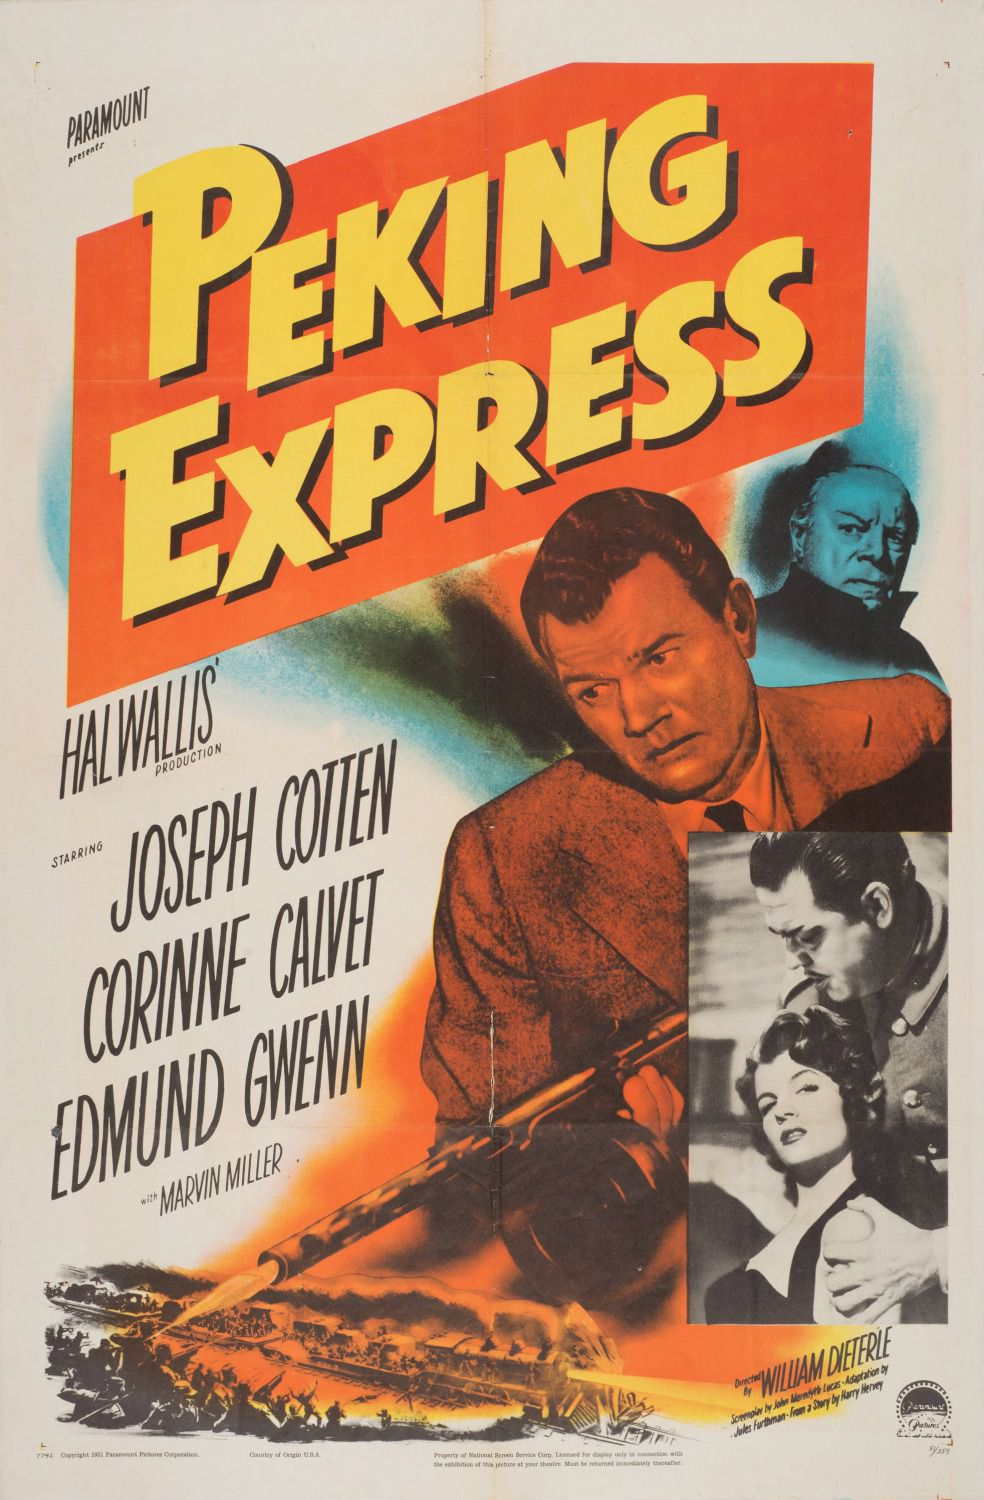 Peking Express - Halwalli production 1951 - cult old film poster